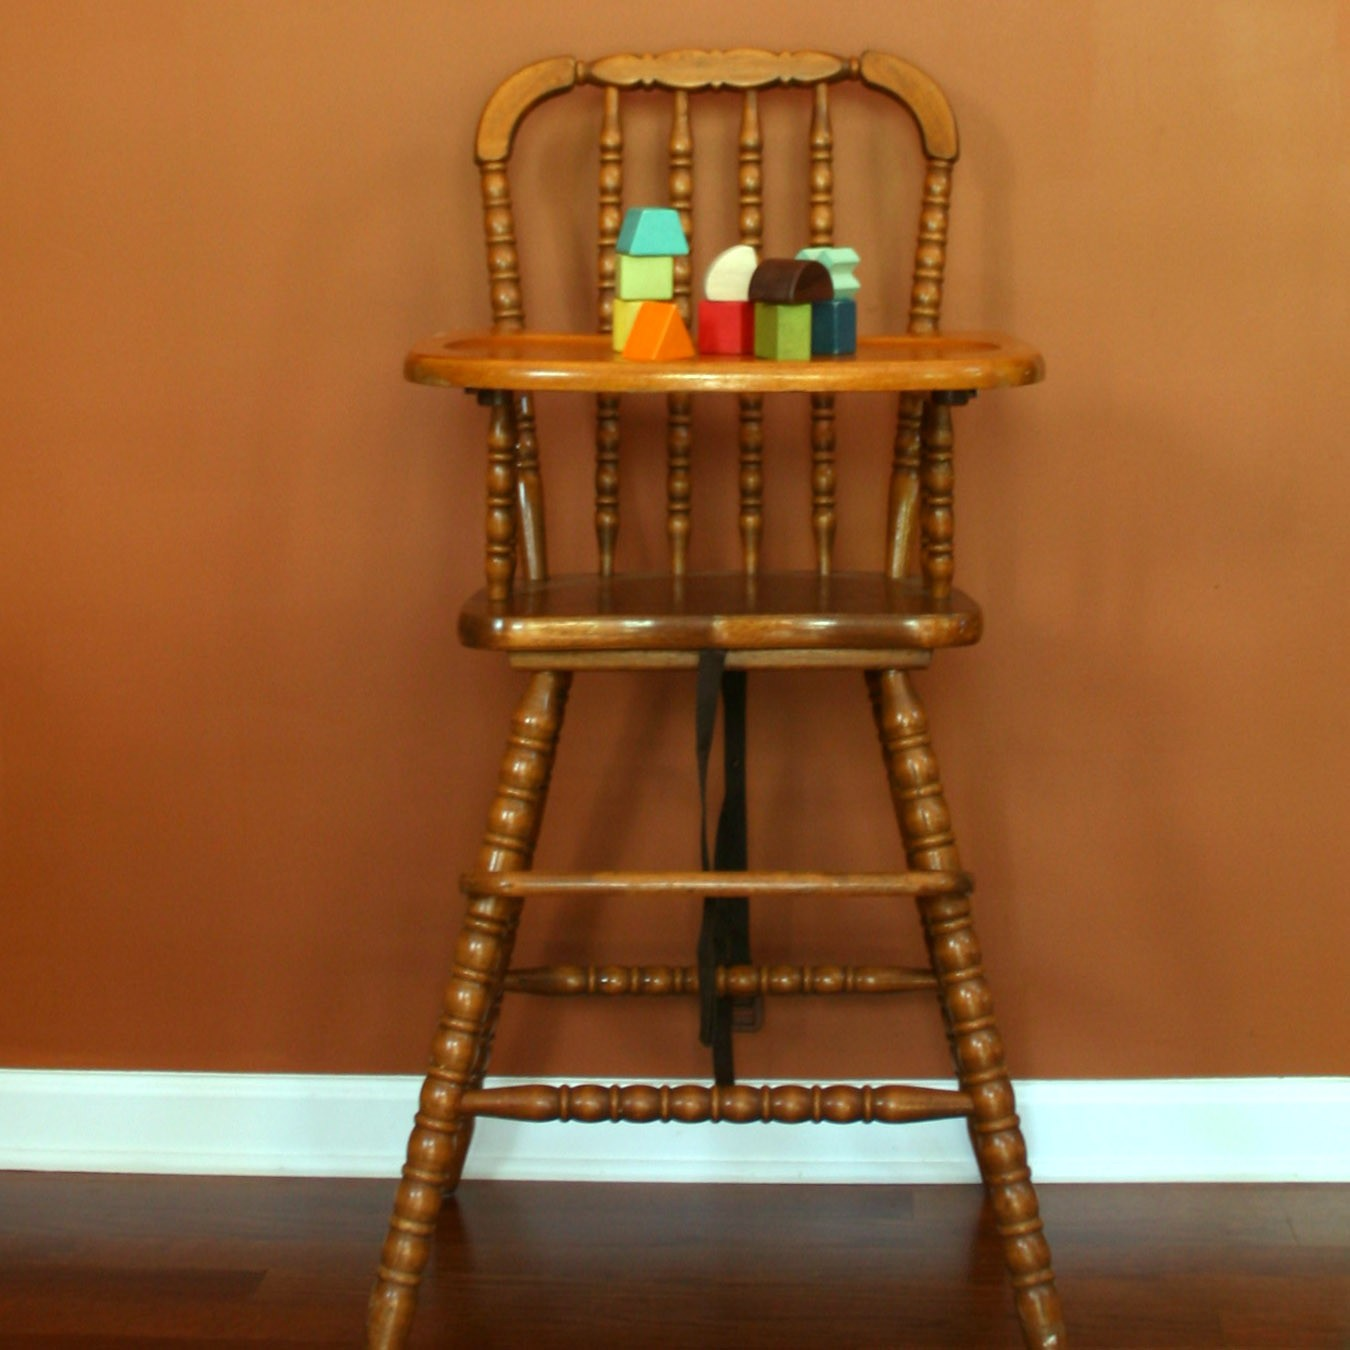 From an Etsy listing - I Love To Op Shop: Op Shop Bump Score - Vintage High Chair